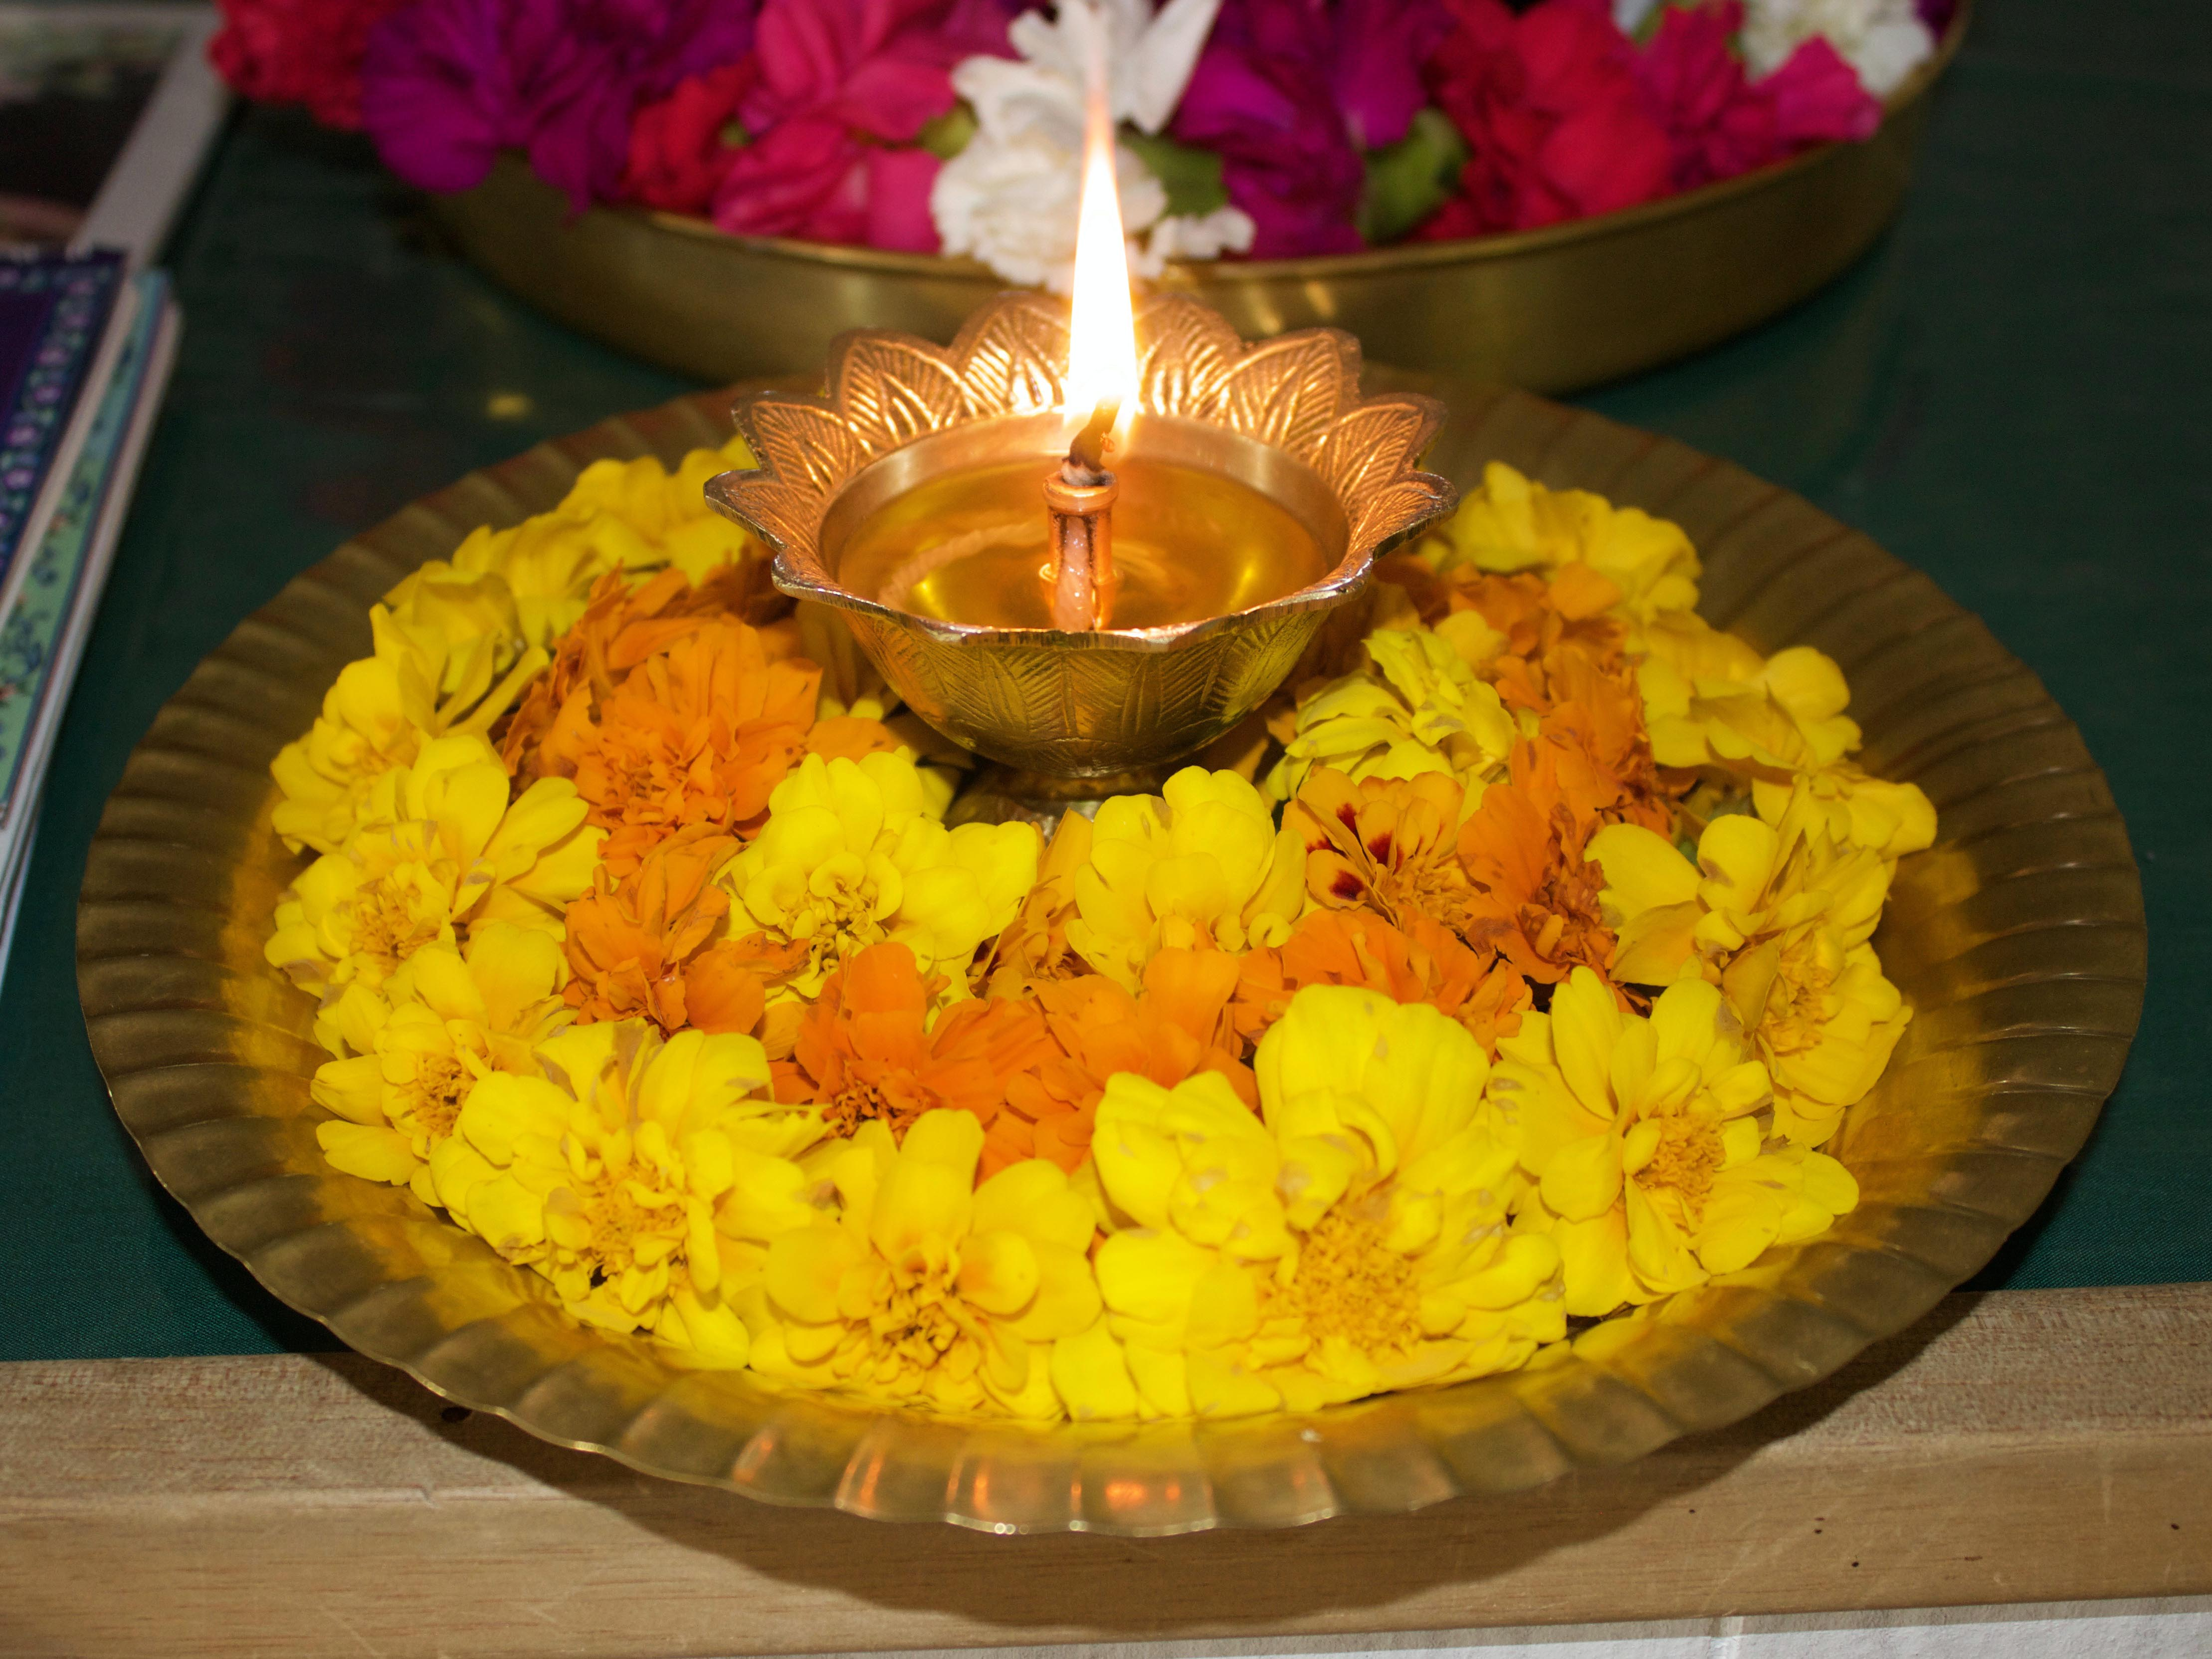 Arati tray with marigolds